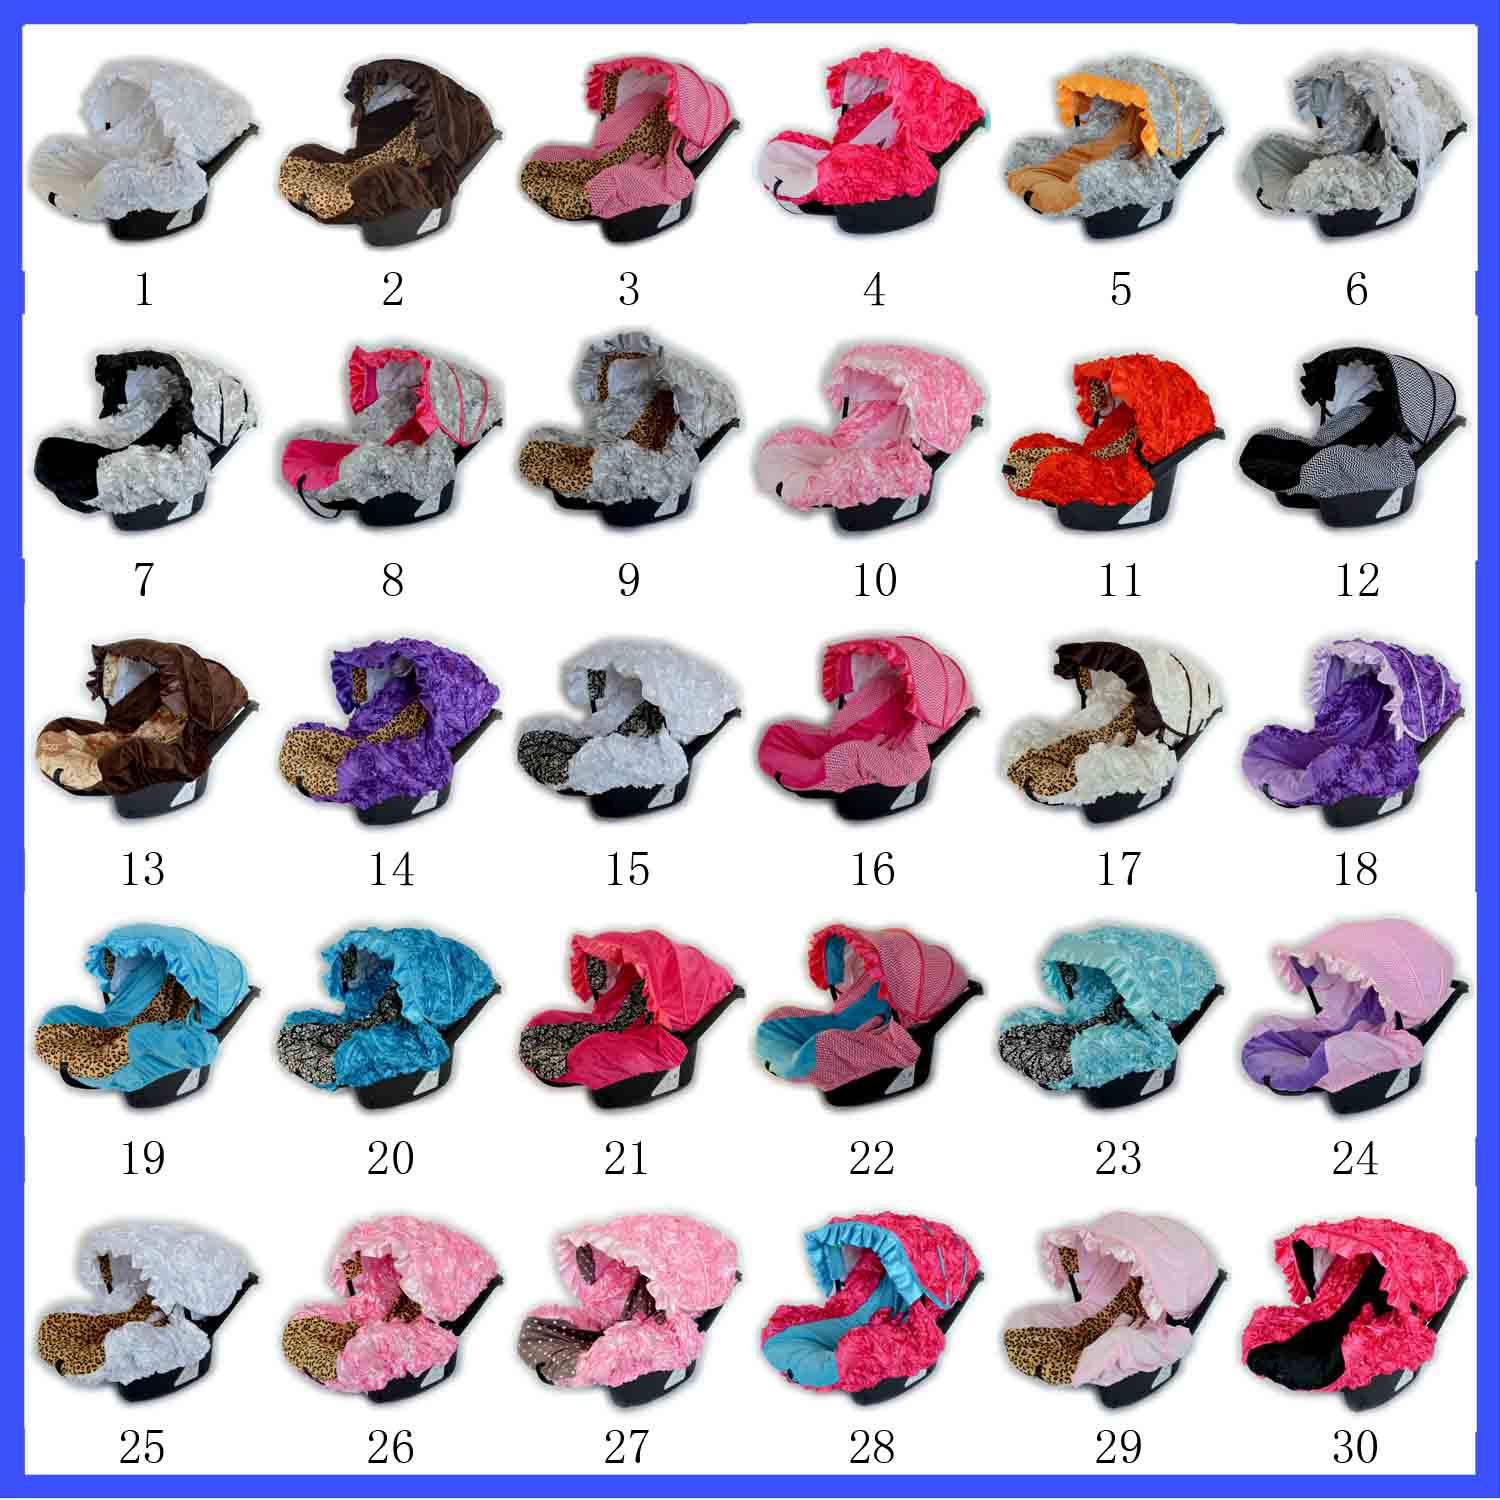 2018 Cheap High Quanlity Fluffy 3d Hot Pink Rosy Infant Car Seat Canopy Cover Fit Most Wholesale Infant Car Seat Many Colors 08 From Happychildren ...  sc 1 st  DHgate.com & 2018 Cheap High Quanlity Fluffy 3d Hot Pink Rosy Infant Car Seat ...